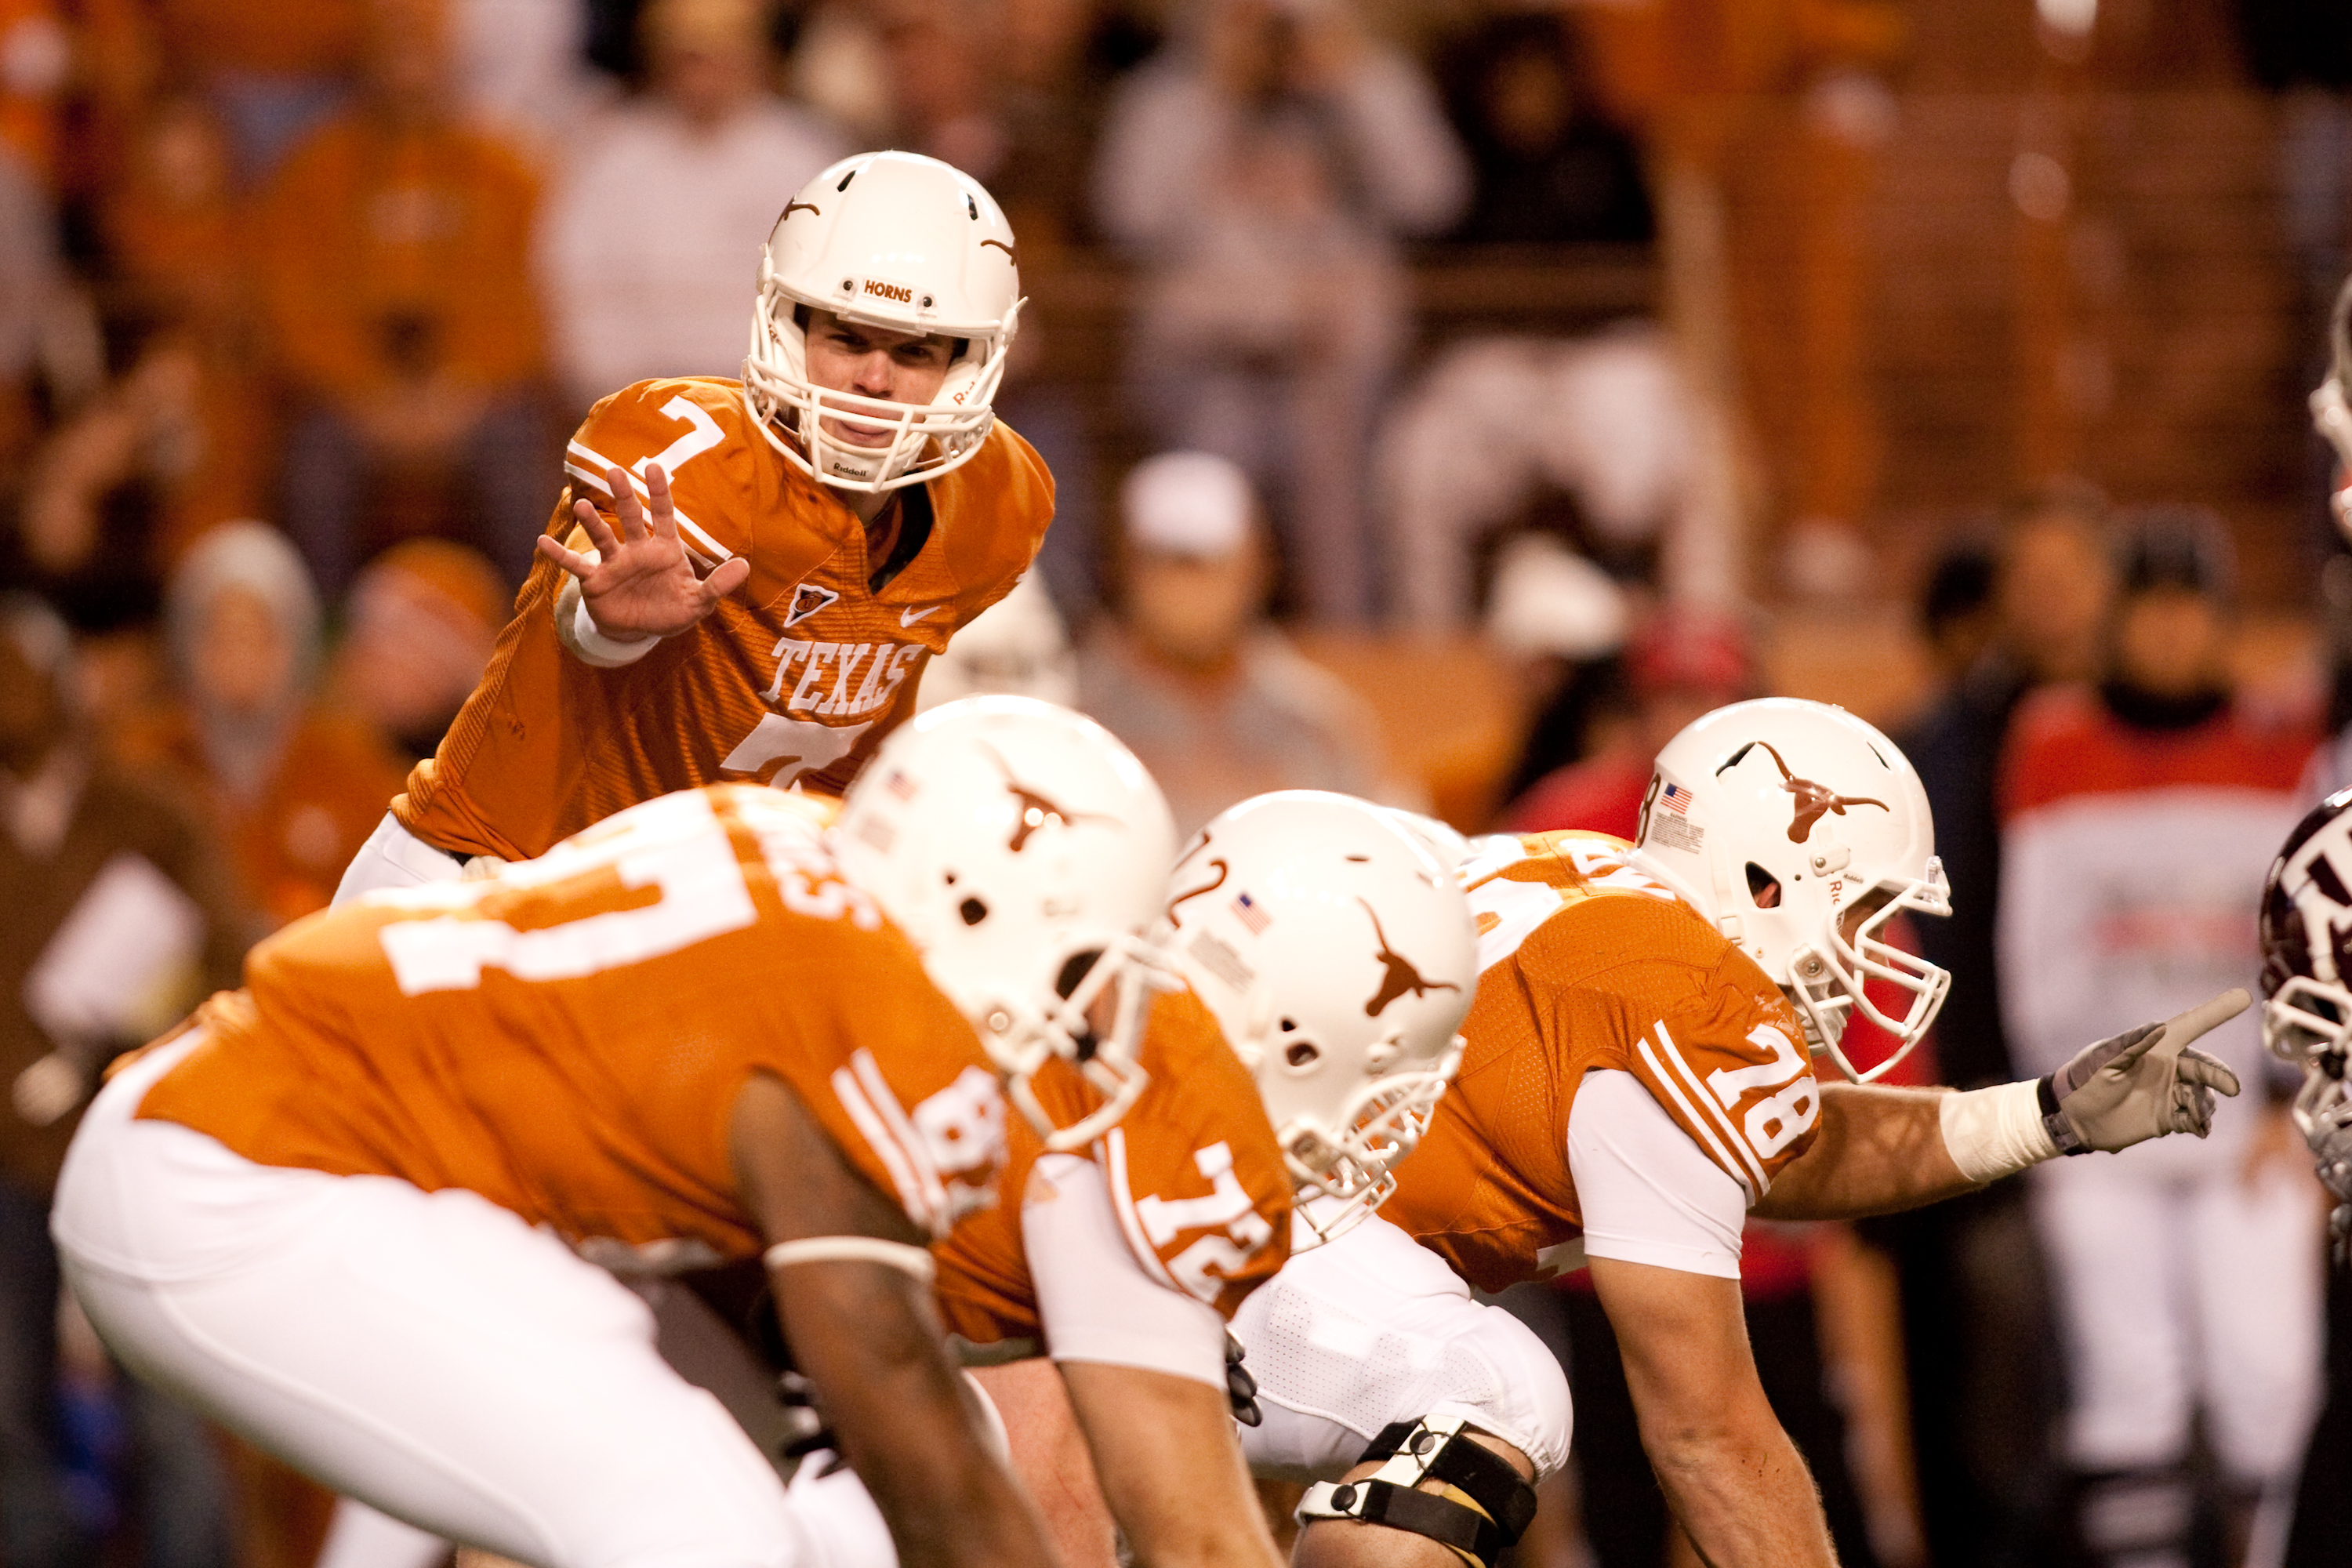 AUSTIN, TX - NOVEMBER 25:  University of Texas quarterback Garrett Gilbert #7 calls a play during the first half against Texas A&M at Darrell K. Royal-Texas Memorial Stadium on November 25, 2010 in Austin, Texas. (Photo by Darren Carroll/Getty Images)